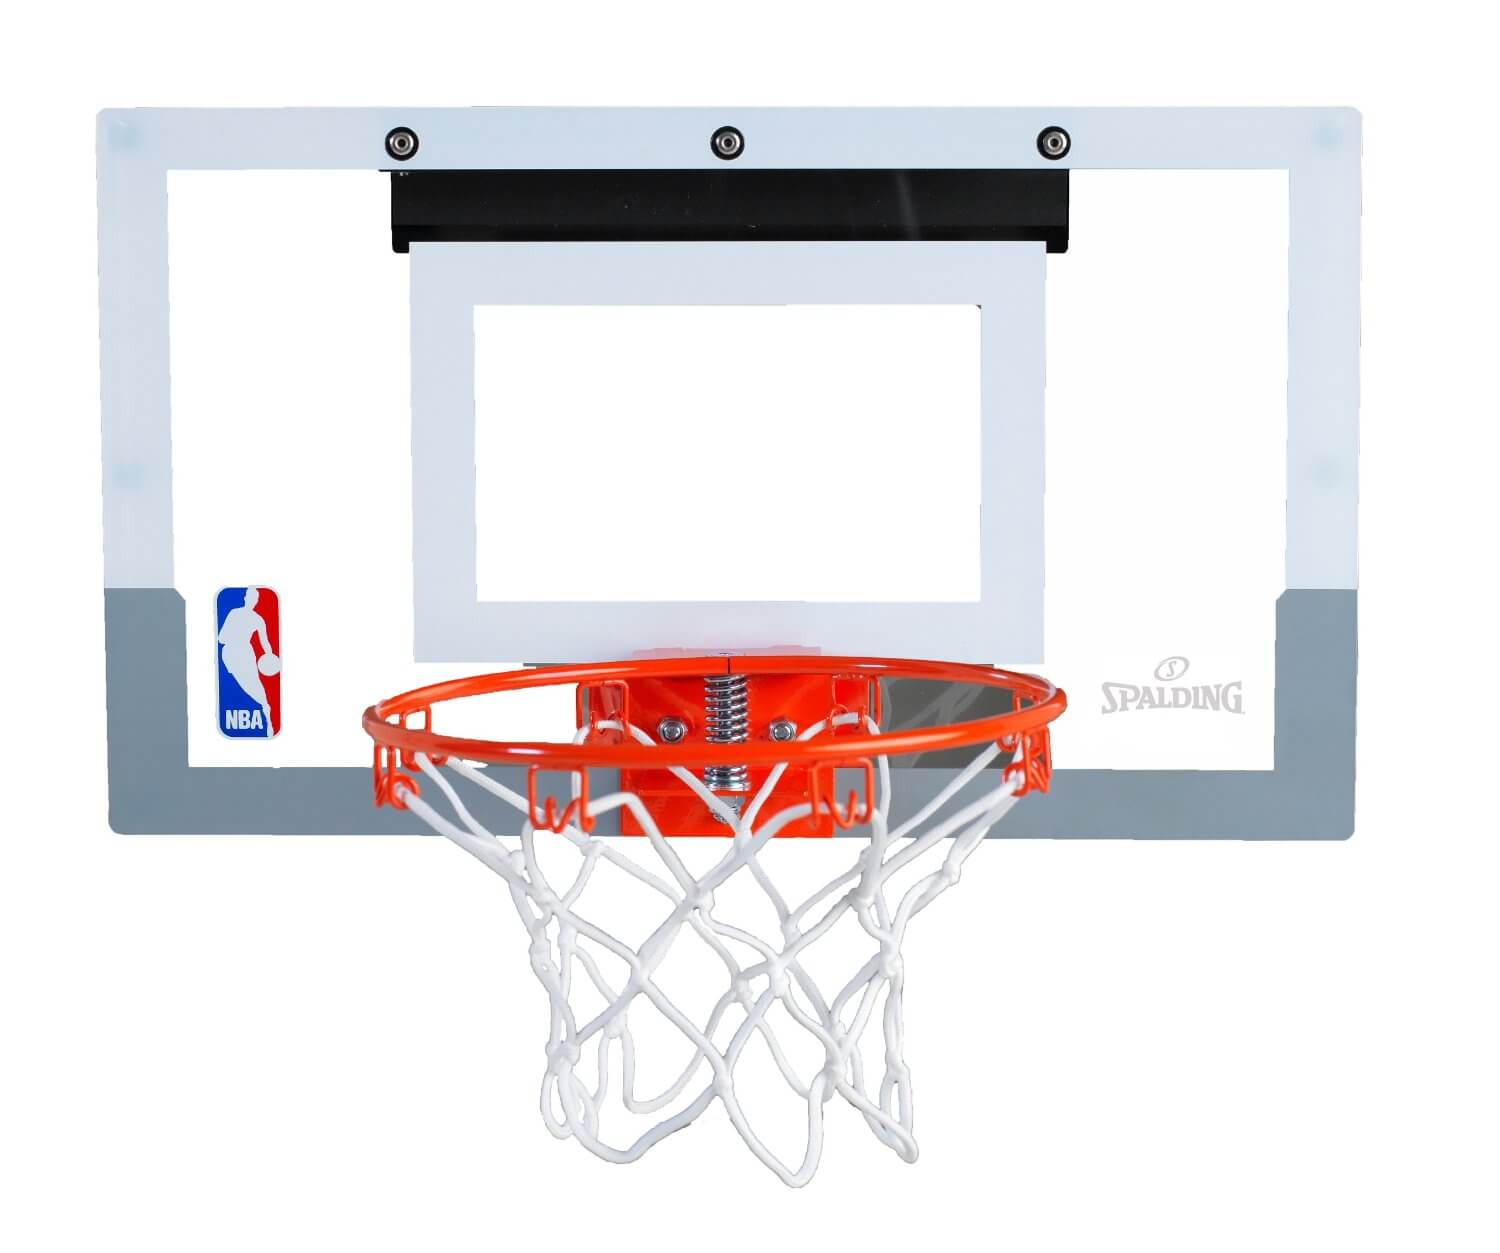 Gentil Another One Of The Great Basketball Hoops For Kids Is The Spalding NBA Slam  Jam Mini Basketball Hoop. The Breakaway Rim Is Similar To The One Seen On  The ...